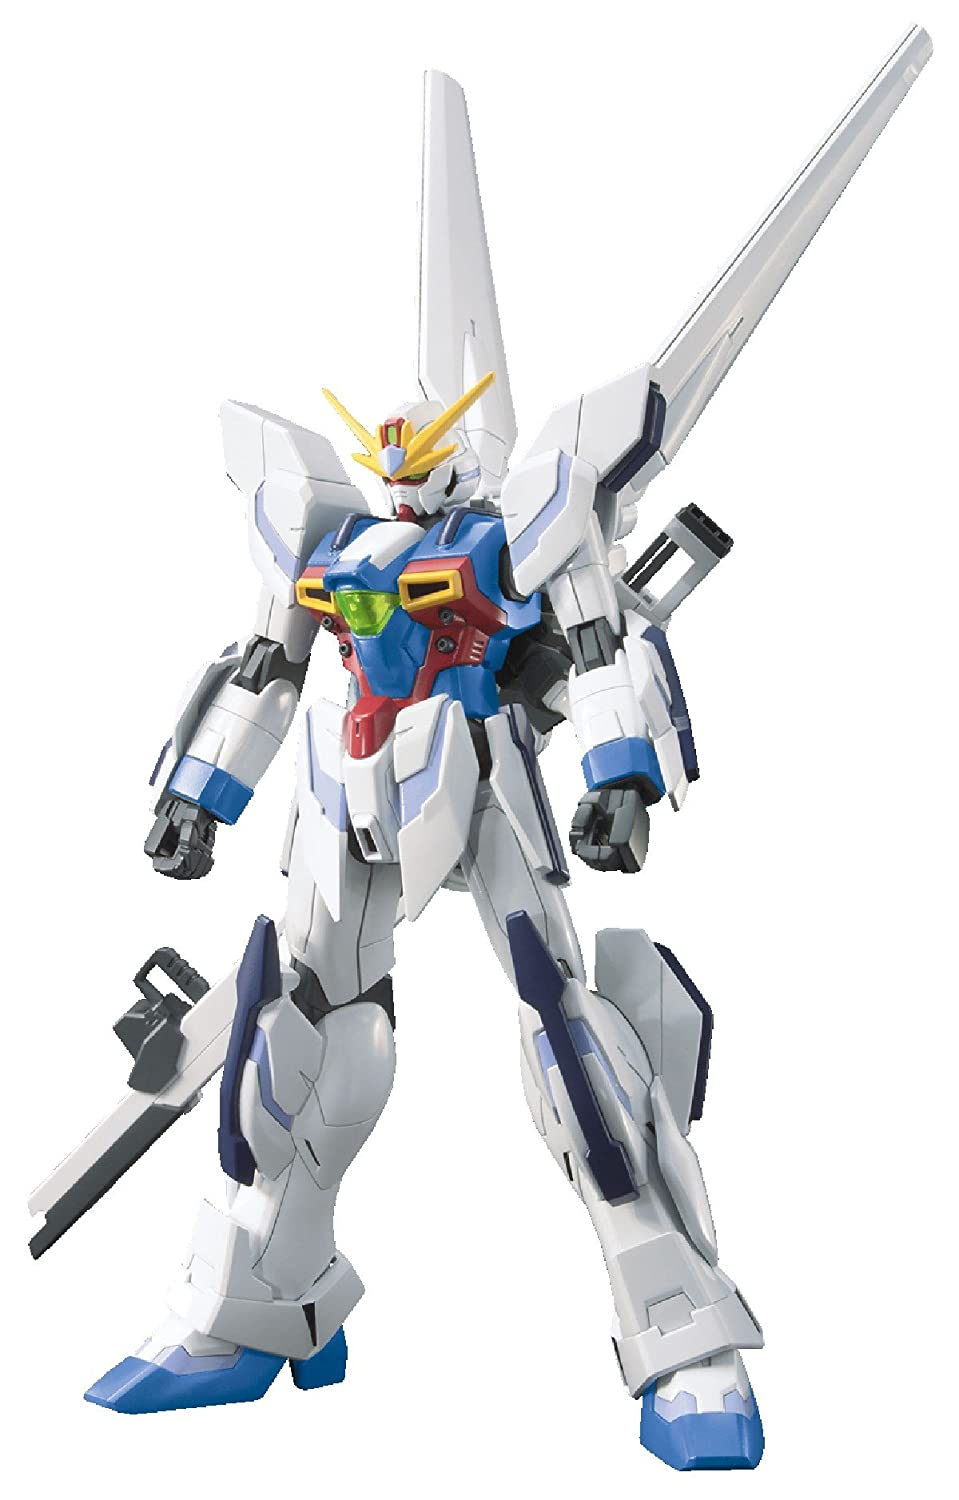 Bandai Hobby #03 HGBF Gundam X Maoh Model Kit (1/144 Scale) bandai hobby 03 hgbf gundam x maoh model kit 1 144 scale